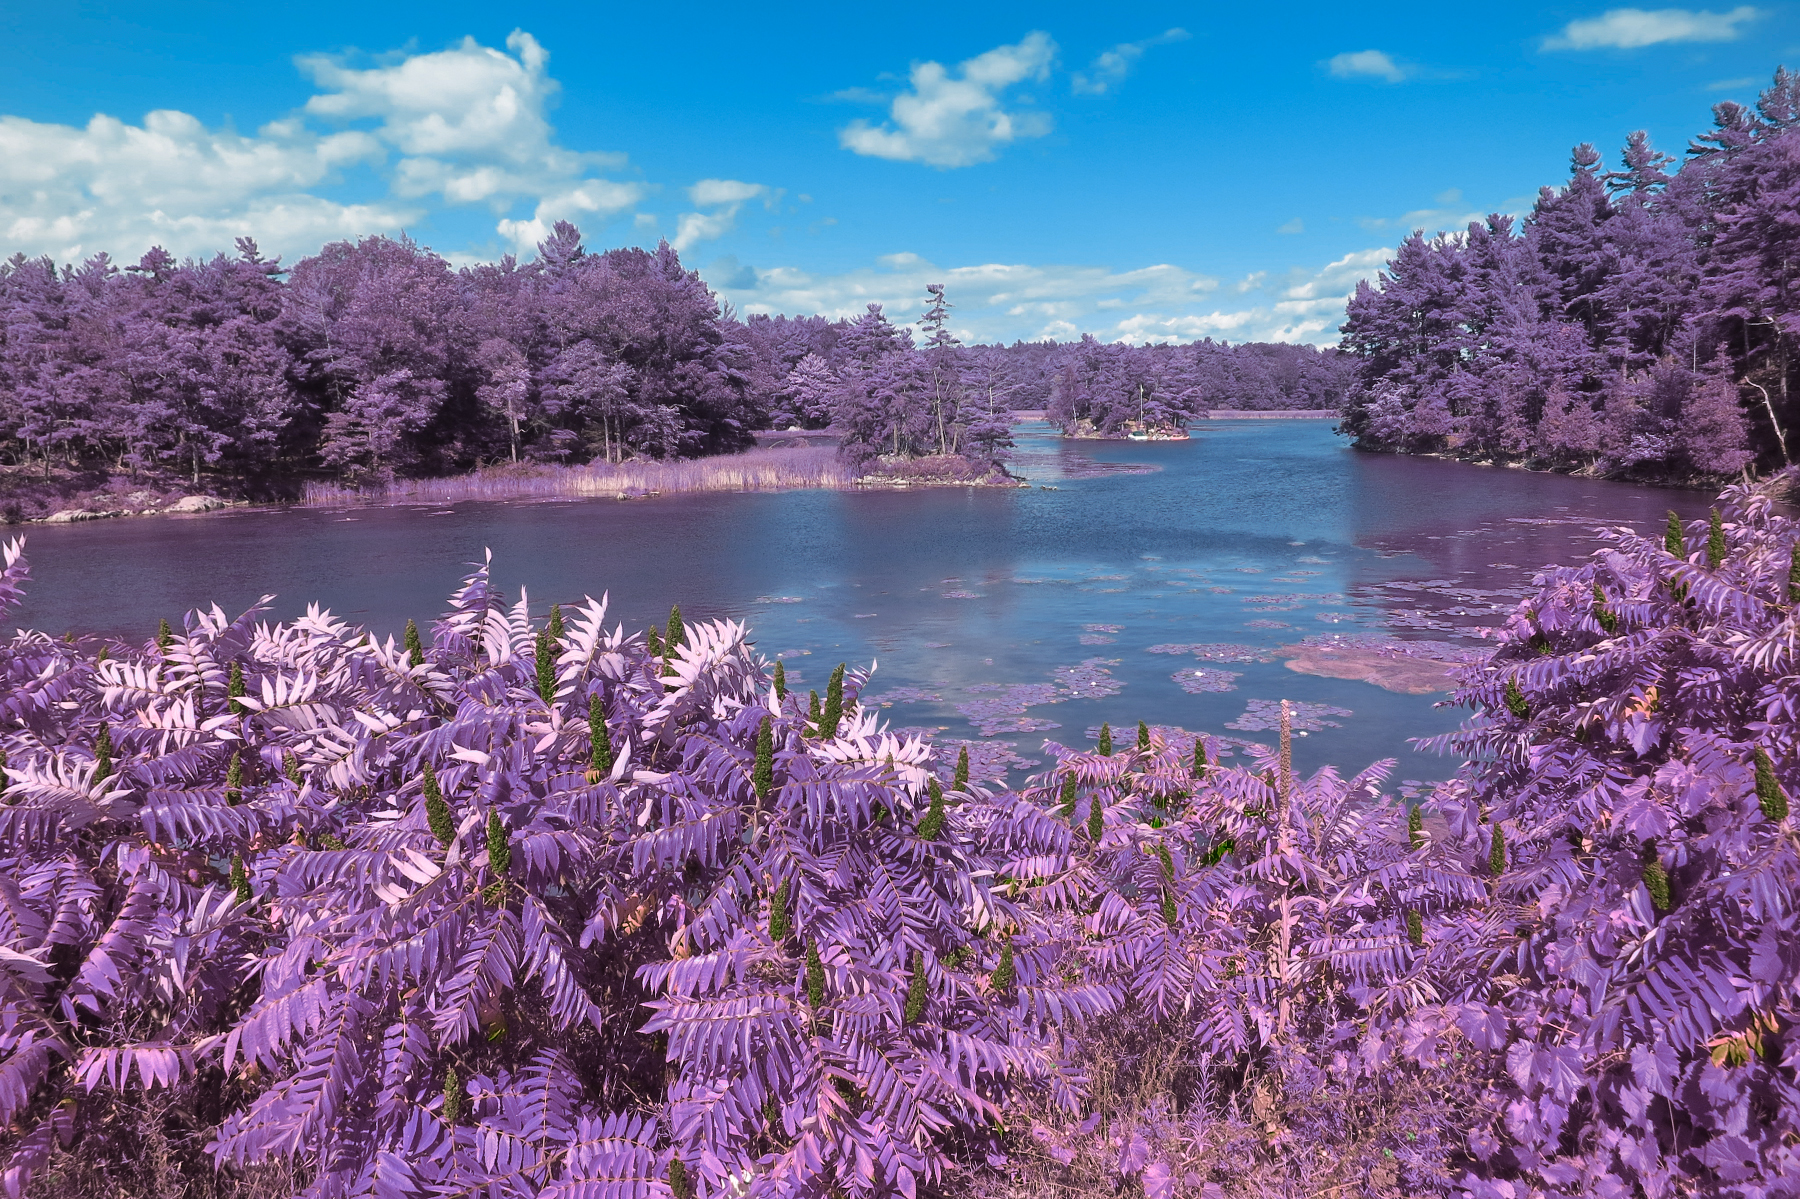 Thousand islands scenery - lavender photo